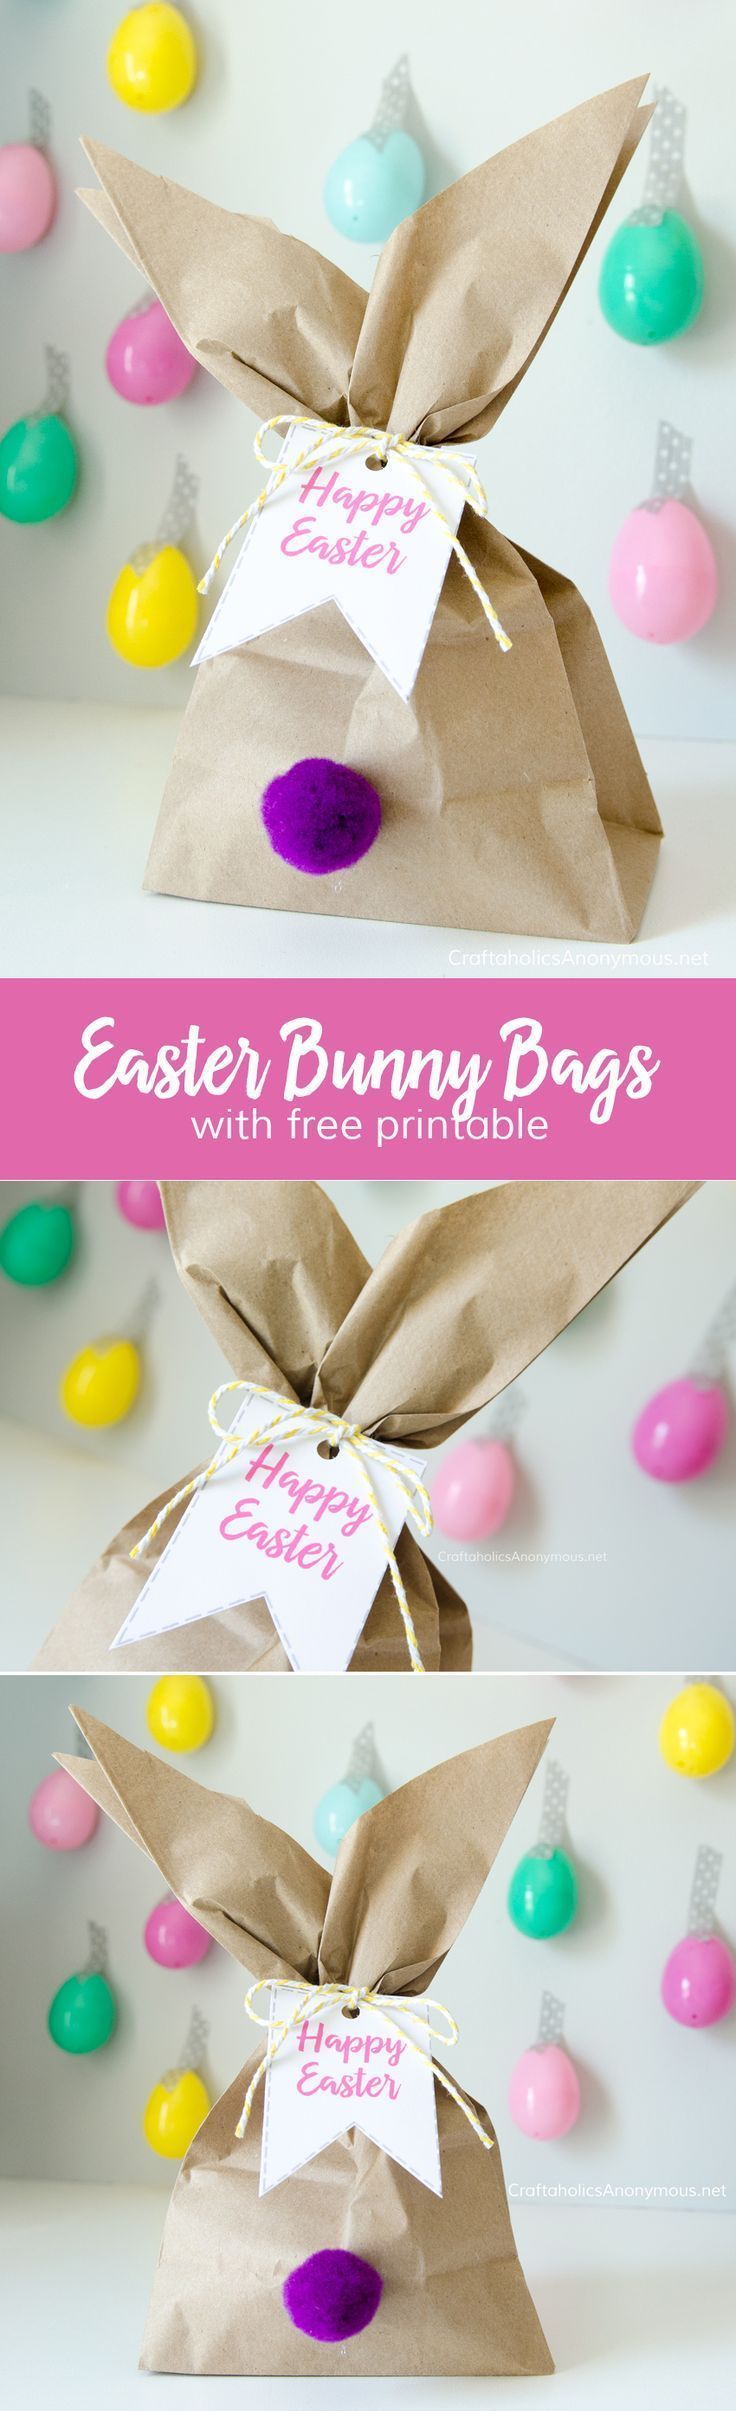 Easy easter bunny gift bags idea make great favors gifts easy easter bunny gift bags idea make great favors gifts decor negle Gallery